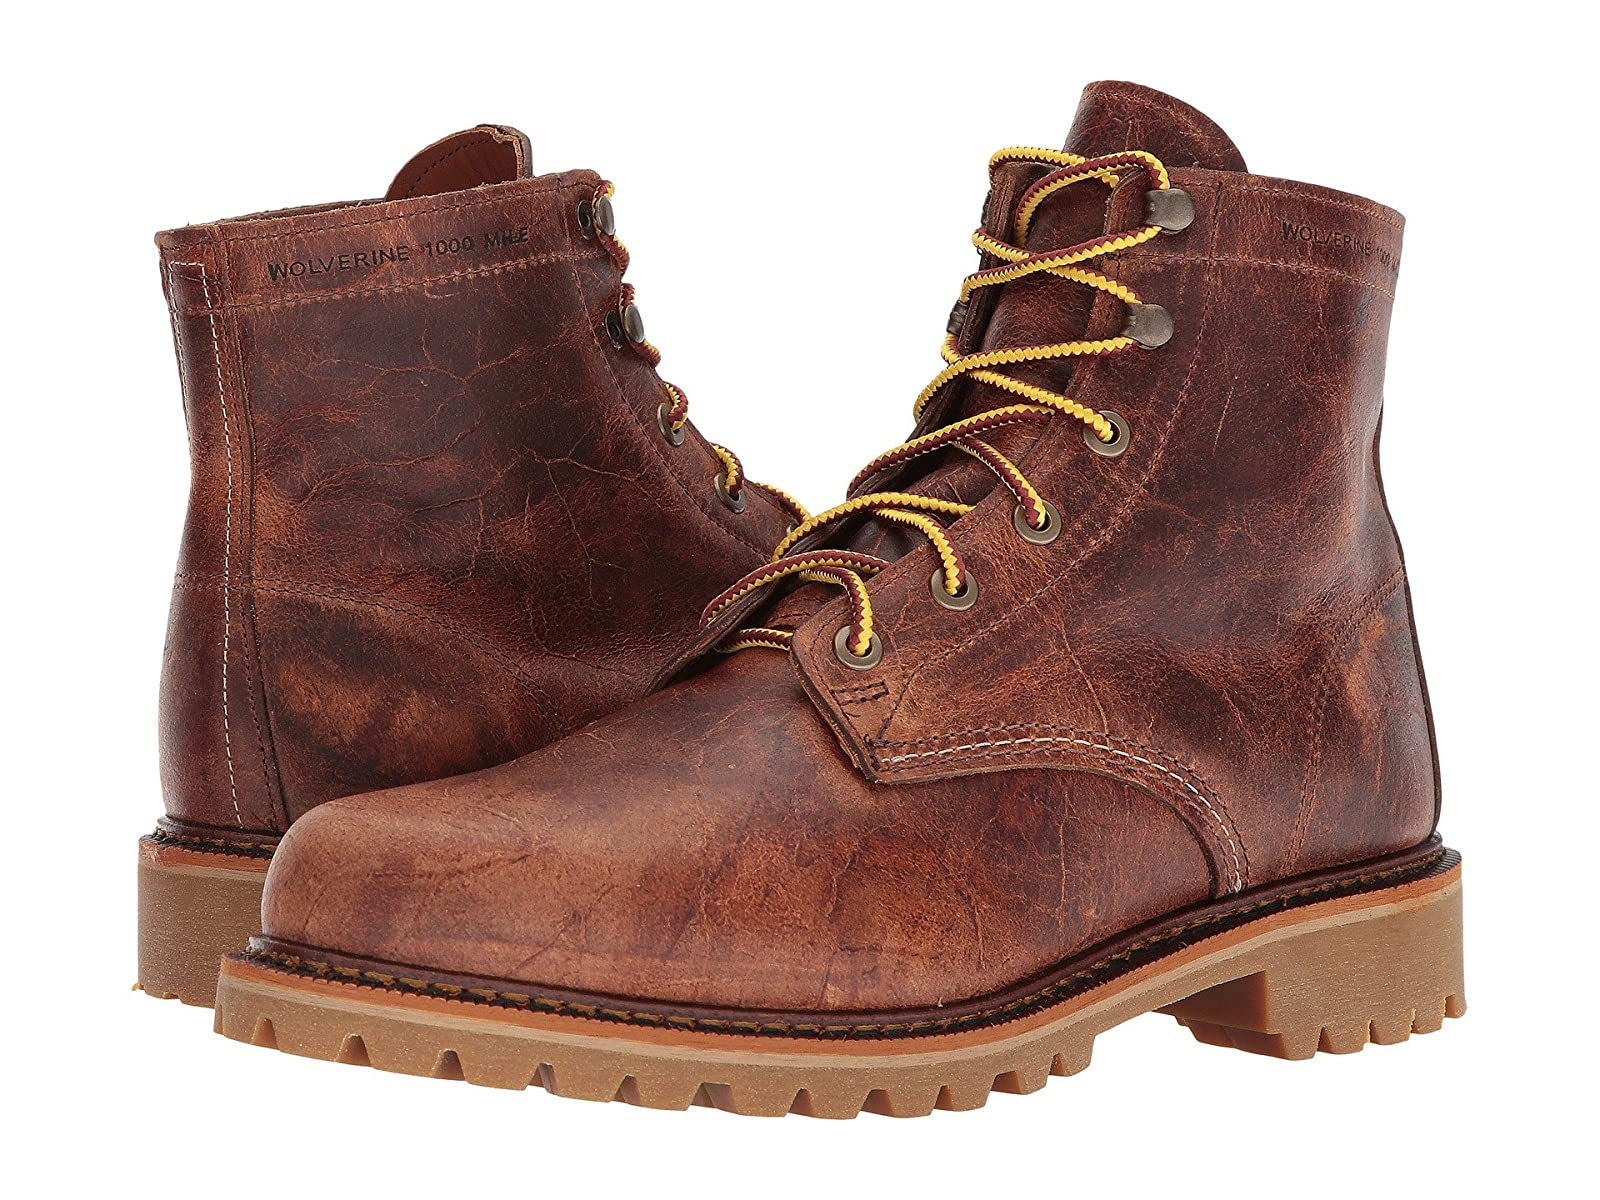 Wolverine DuvallEconomical and quality shoes